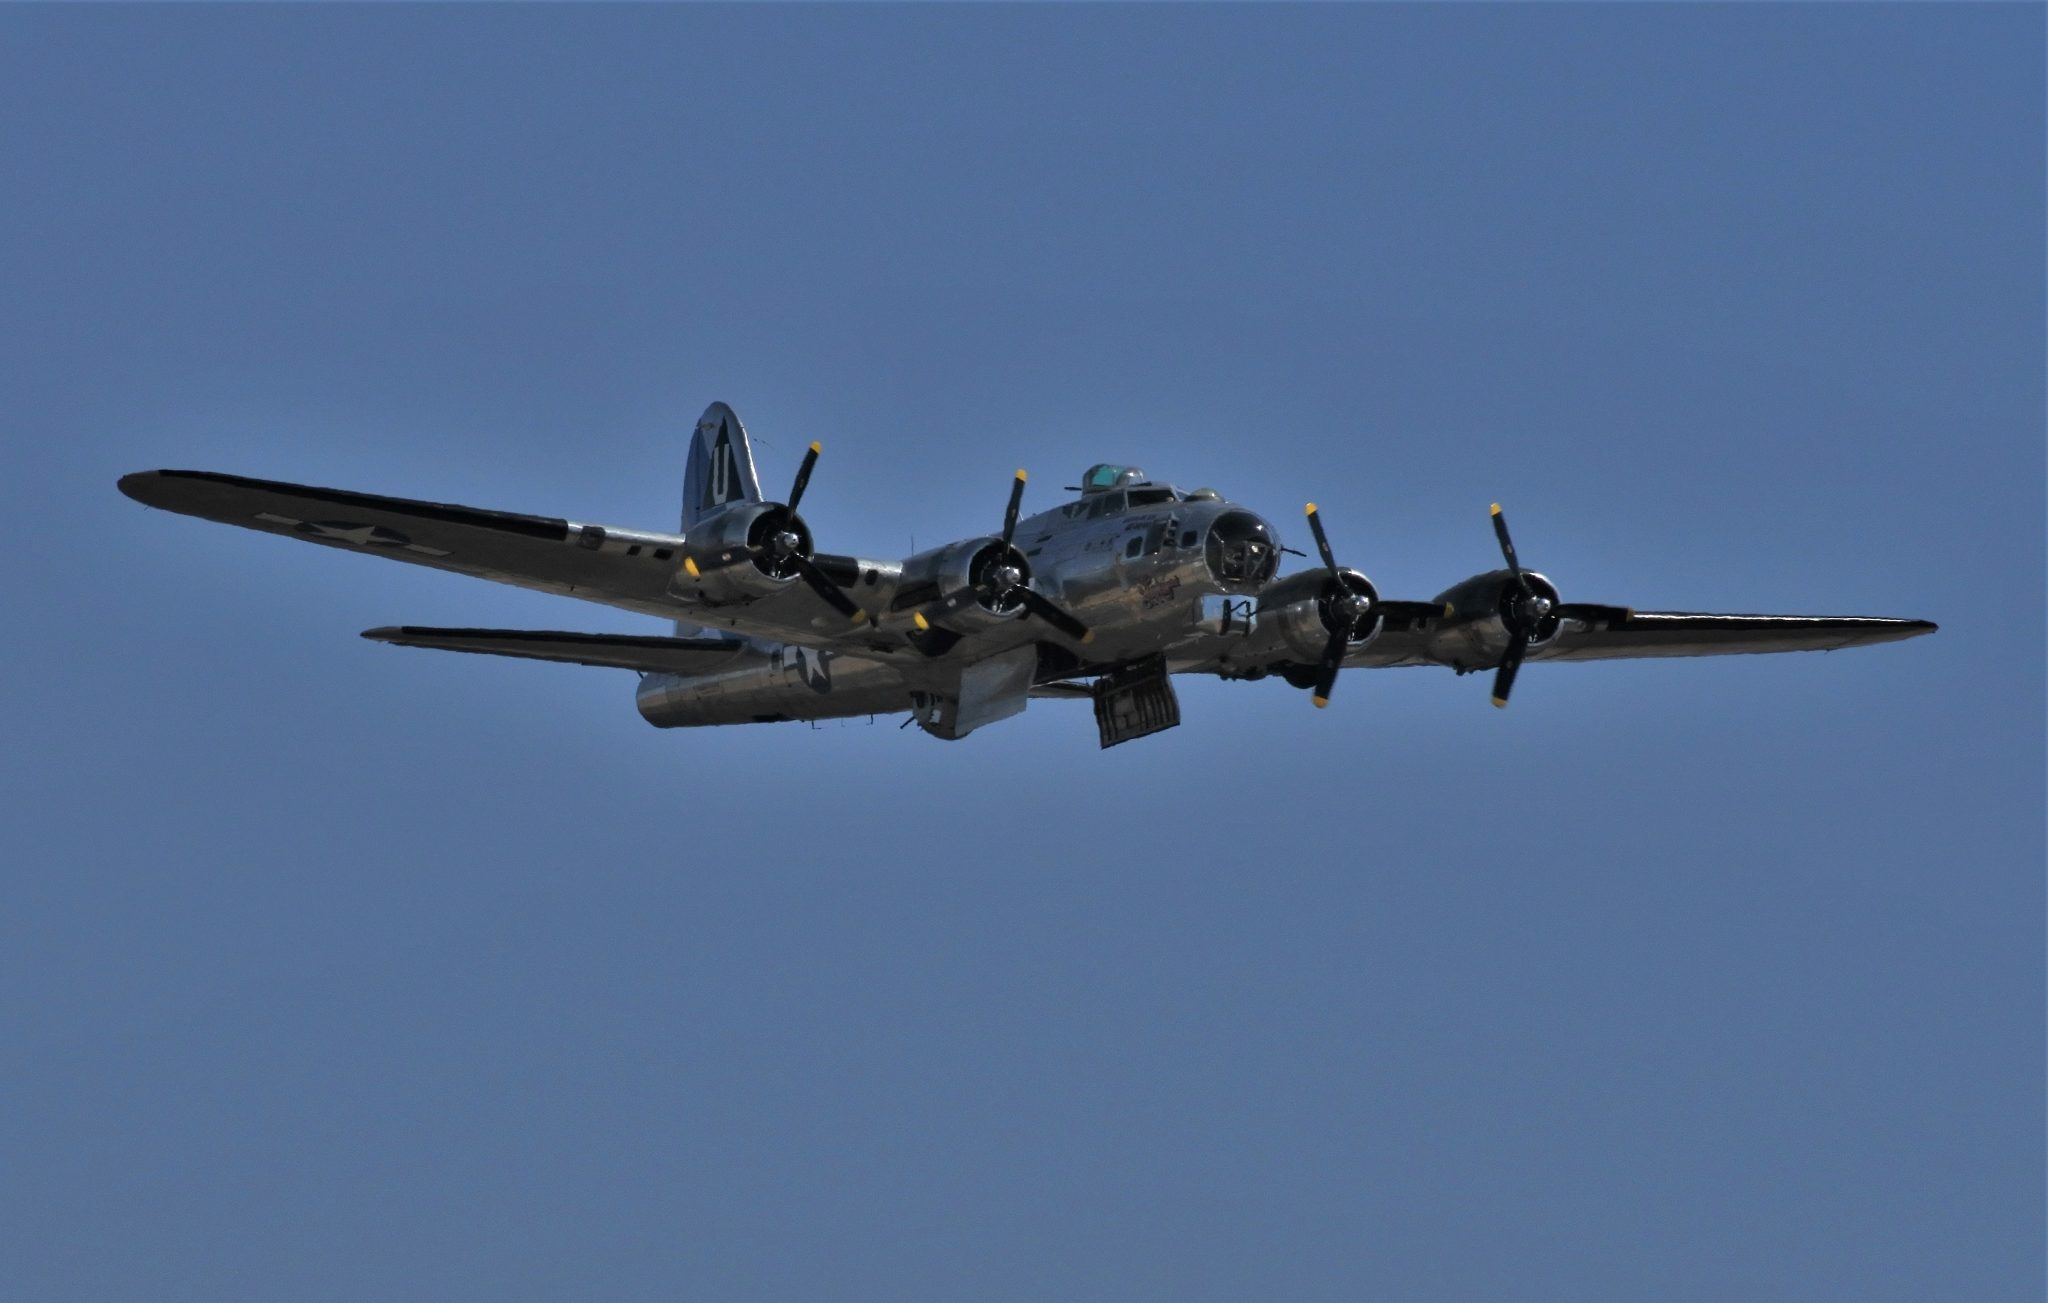 B-17G Flying Fortress